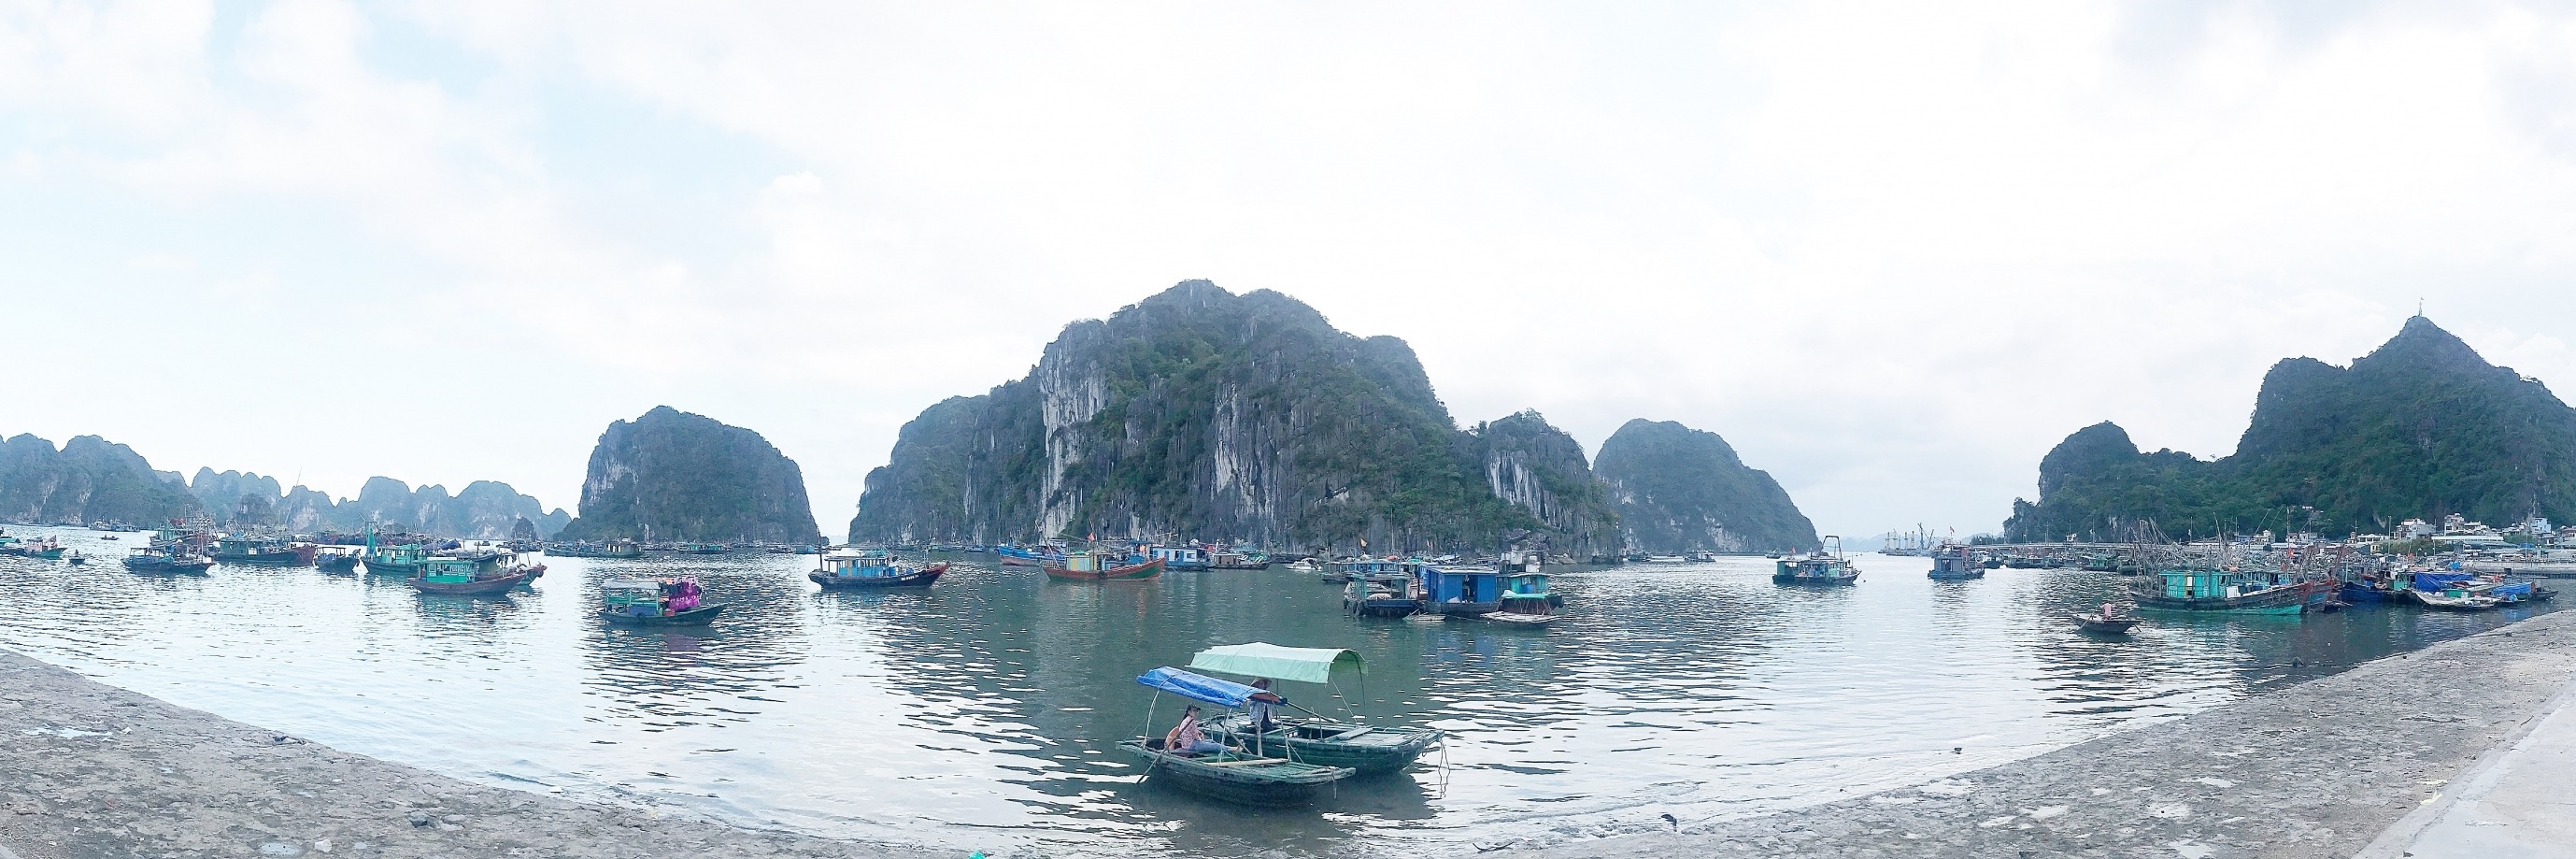 https://gody.vn/blog/tuyethanh6028009/post/vinh-ha-long-lan-dau-tien-vi-vu-mien-bac-phan-3-4630